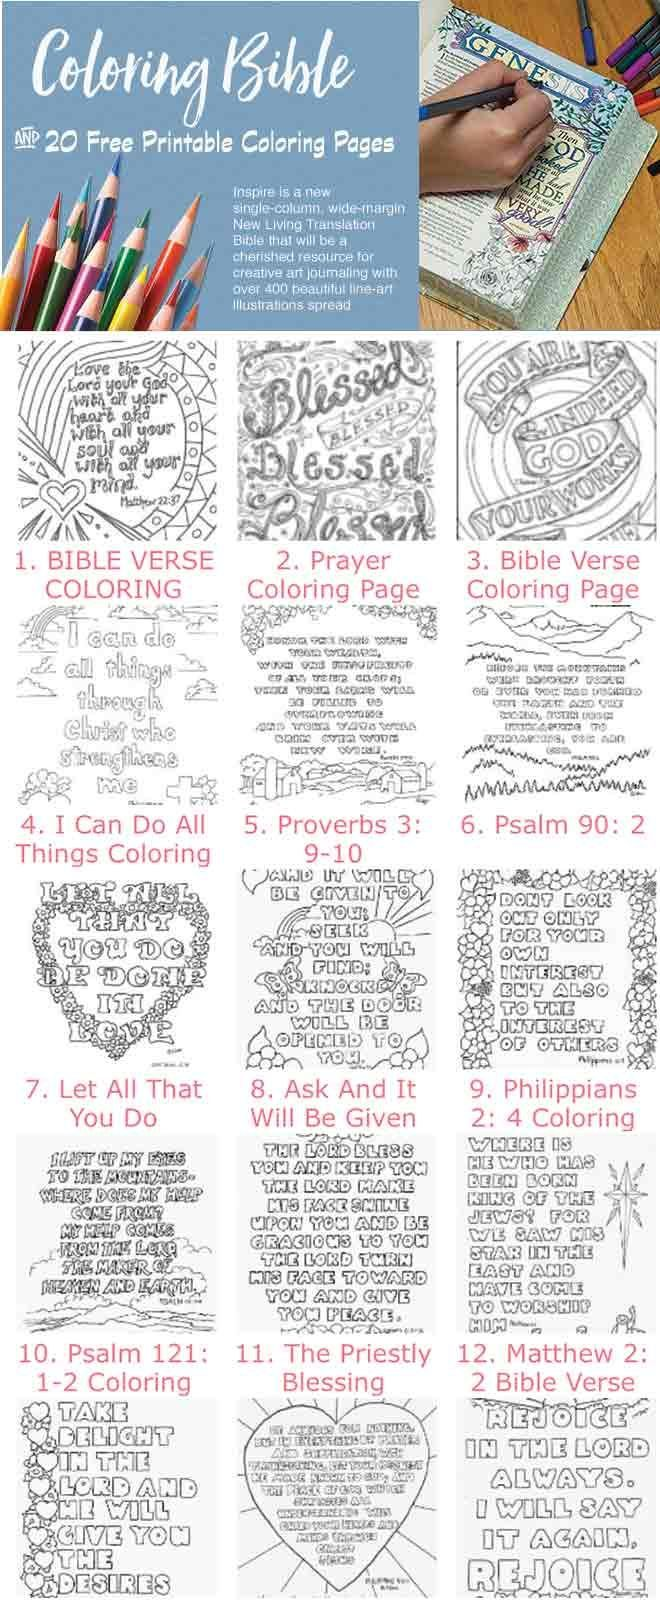 Free printable coloring pages for kids bible - 20 Free Bible Coloring Pages And A Peek Into The New Bible Cooling Book